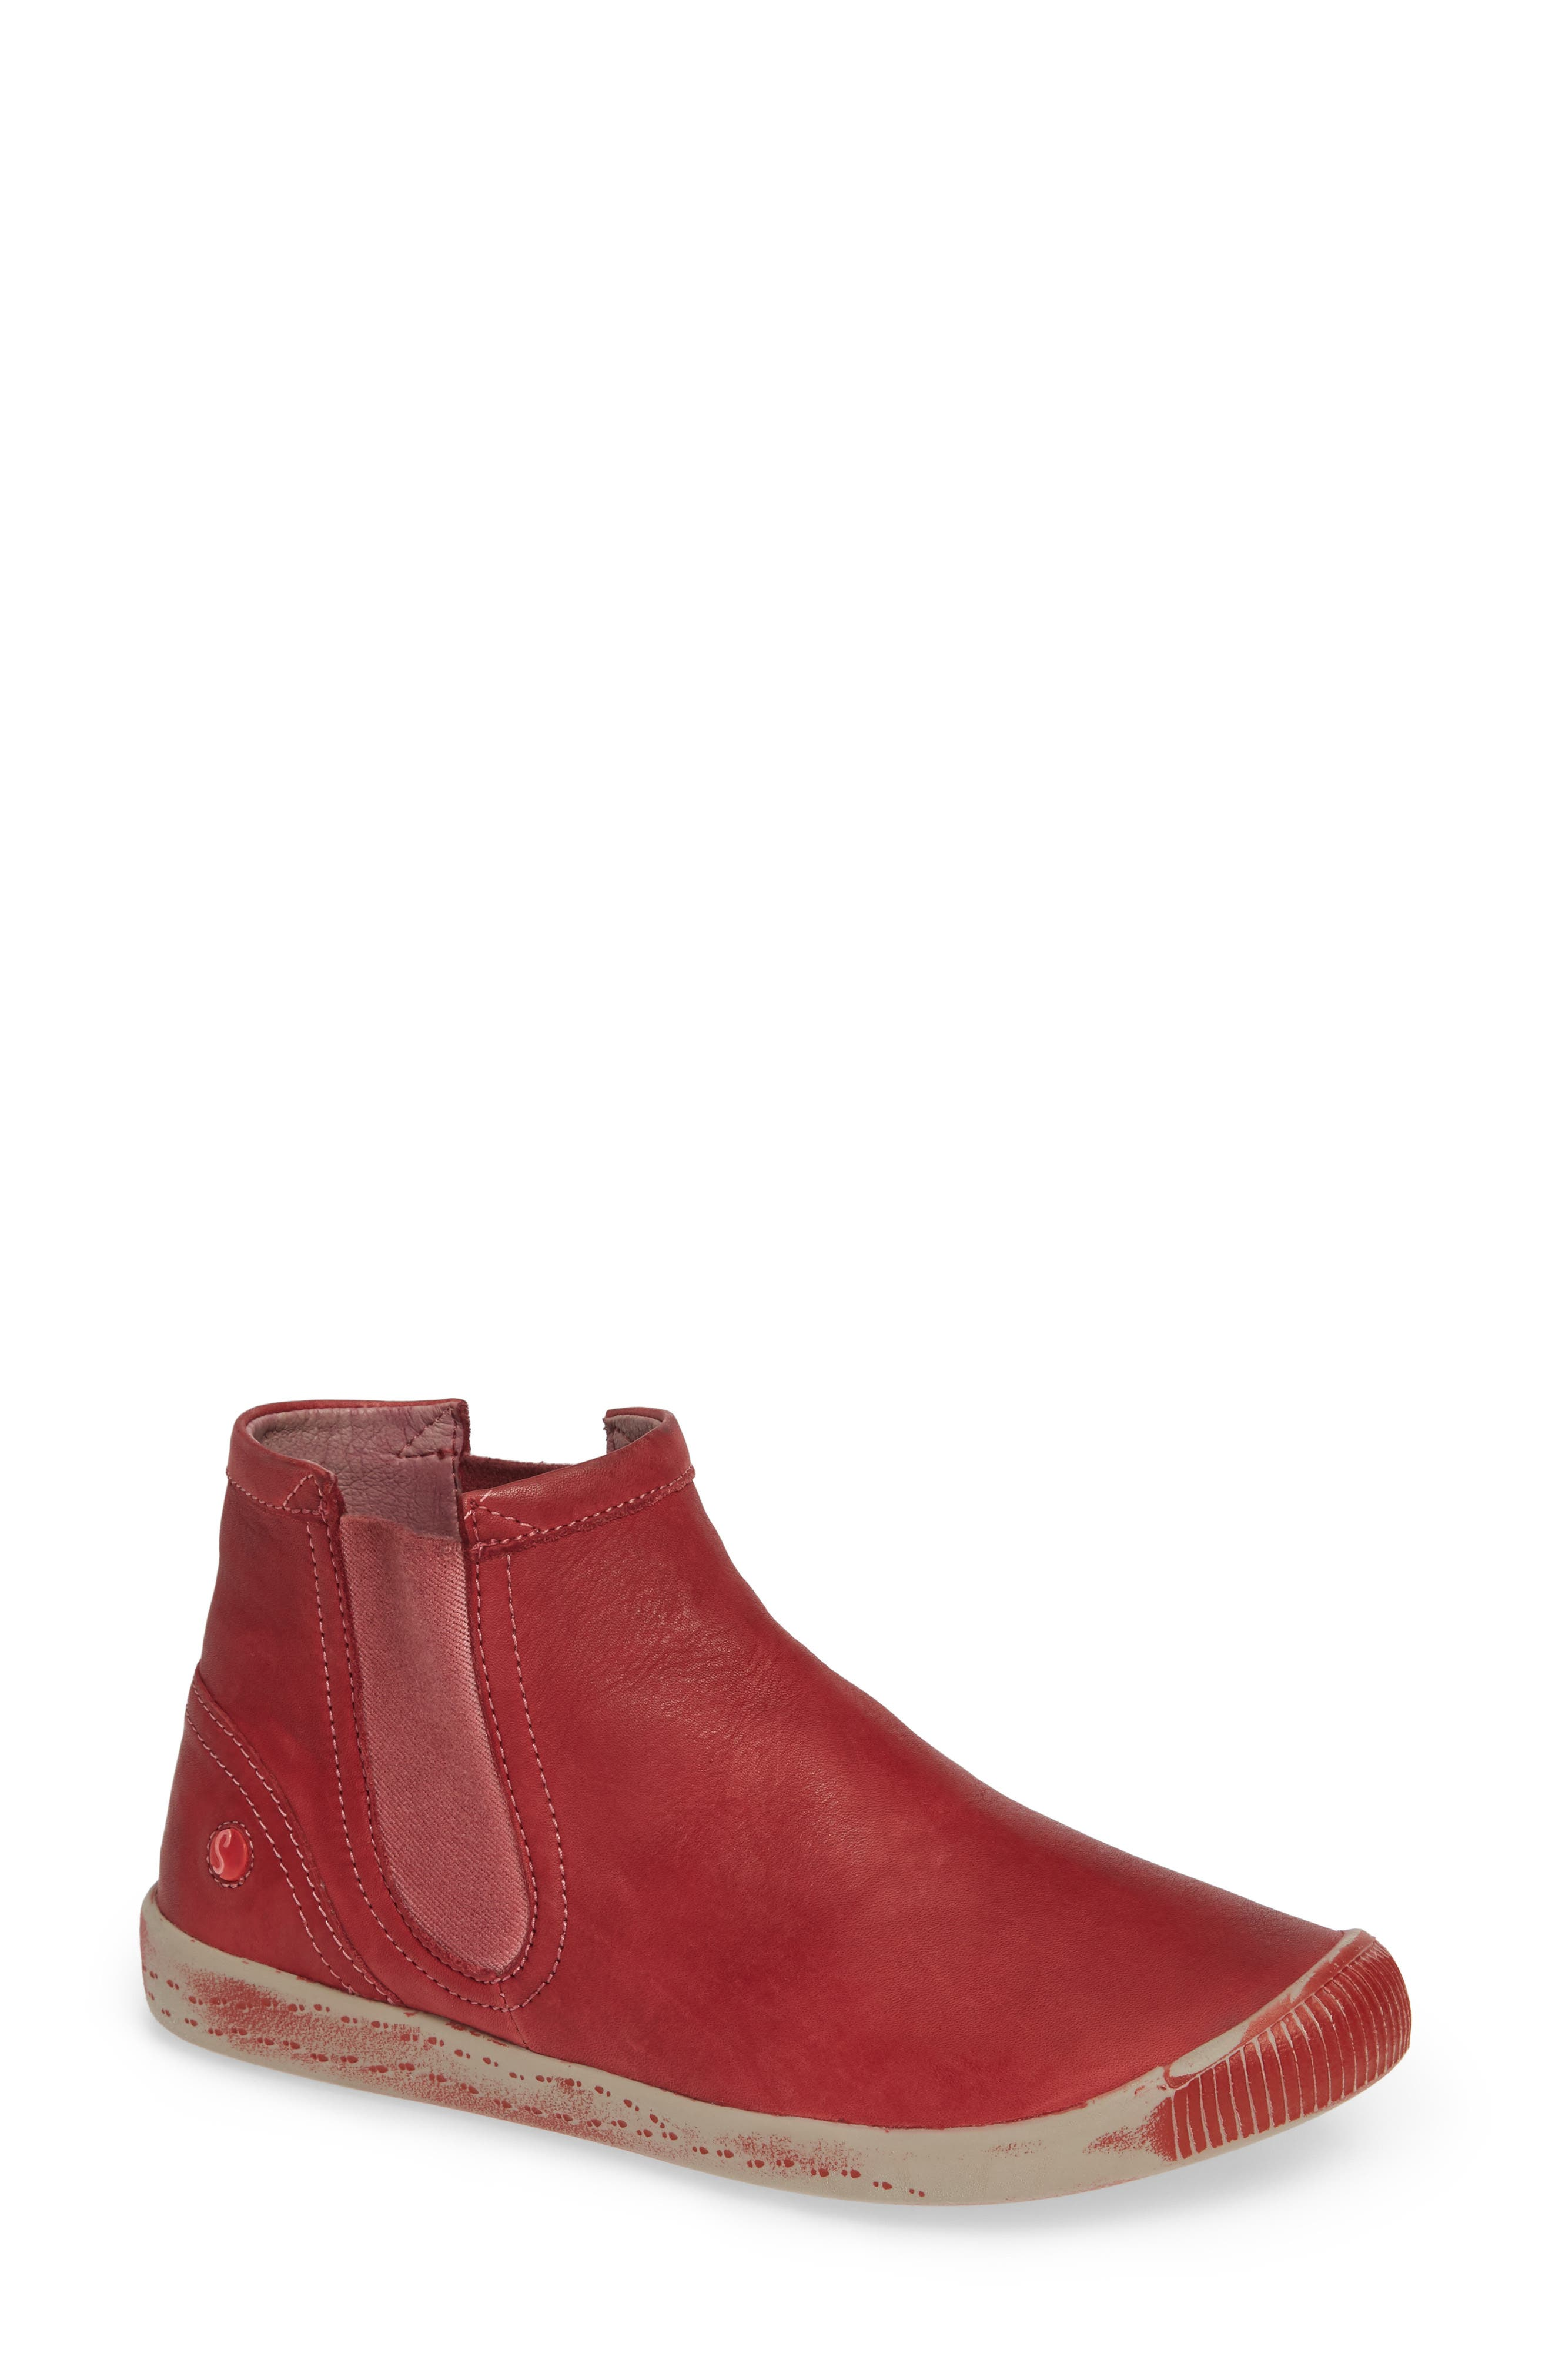 Softinos By Fly London Ici Sneaker - Red